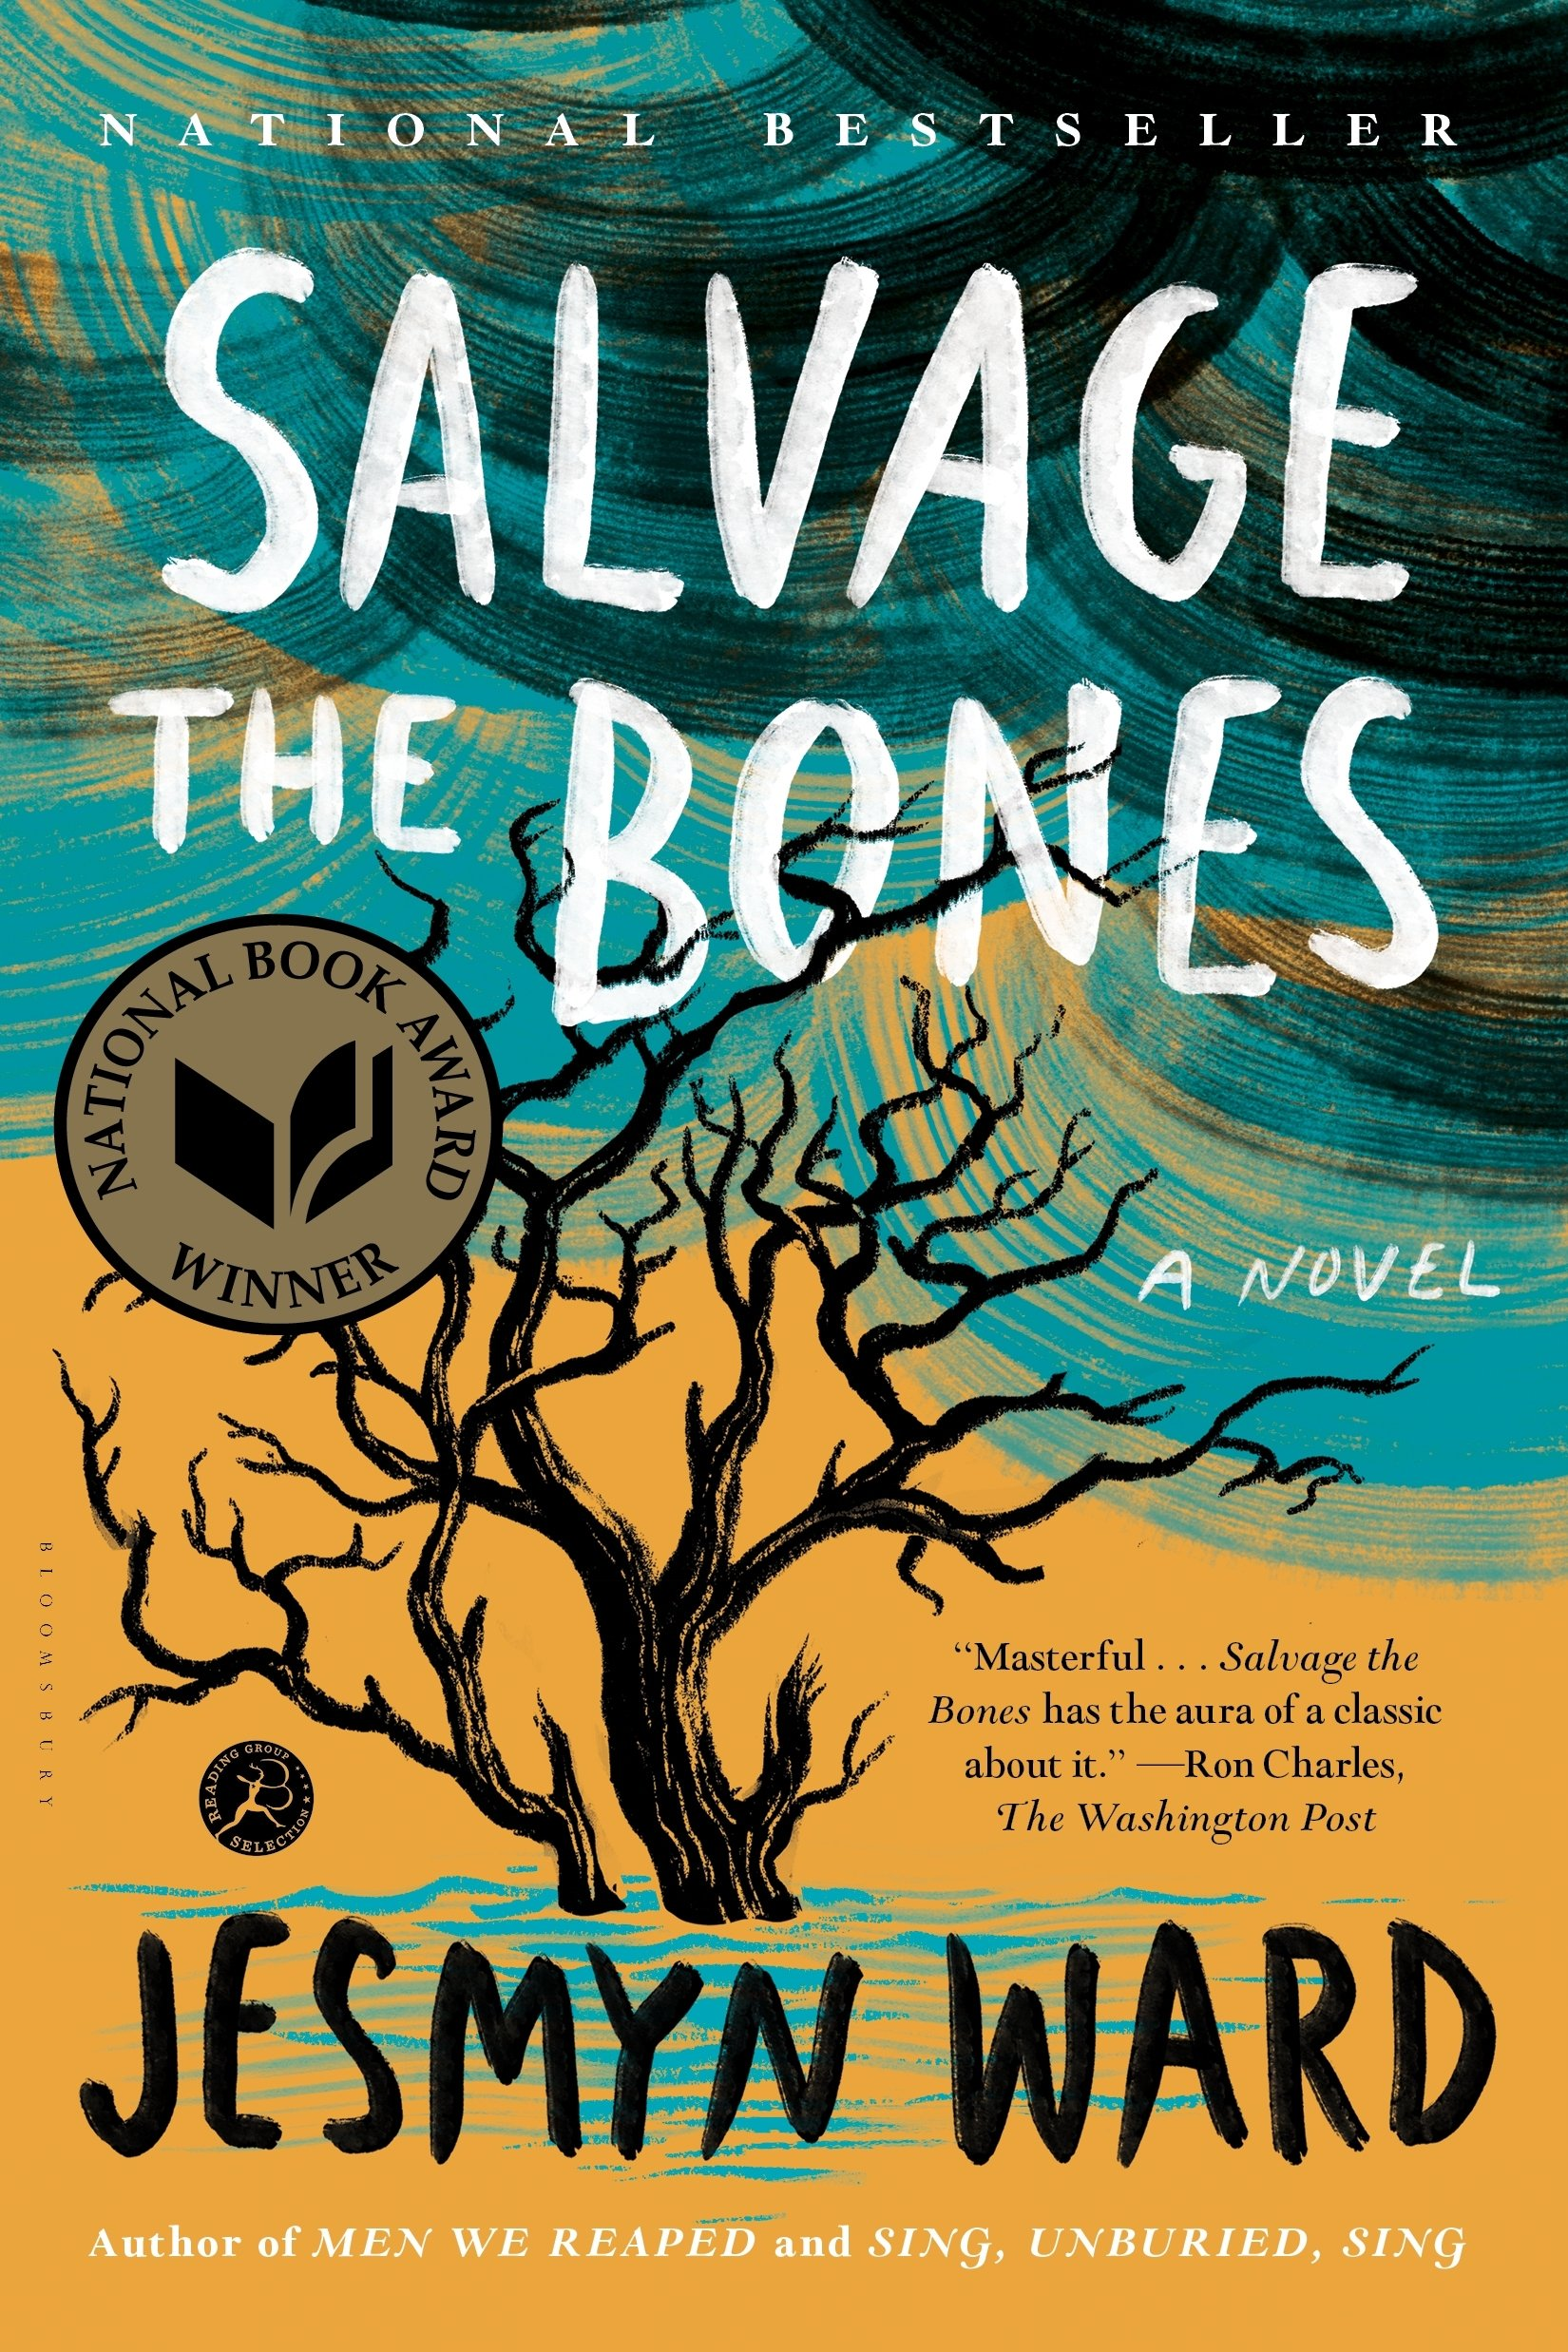 Salvage the Bones  A Novel  Jesmyn Ward  8601422187960  Amazon.com  Books d1015f1e242